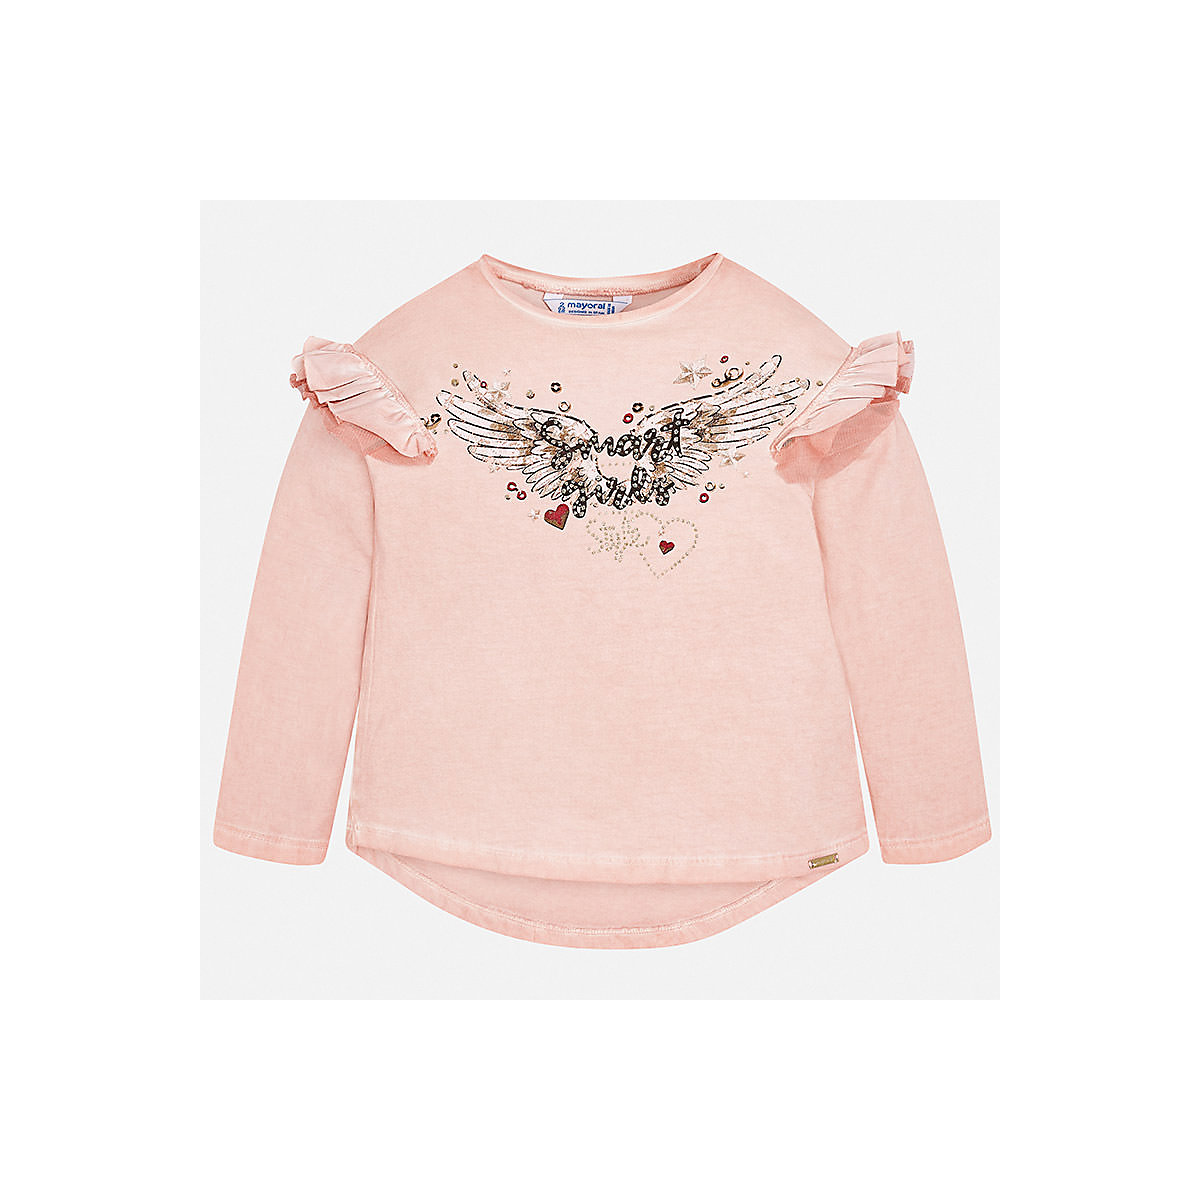 MAYORAL Blouses & Shirts 8849422 Girls Cotton  clothes baby boy children child wear blouses